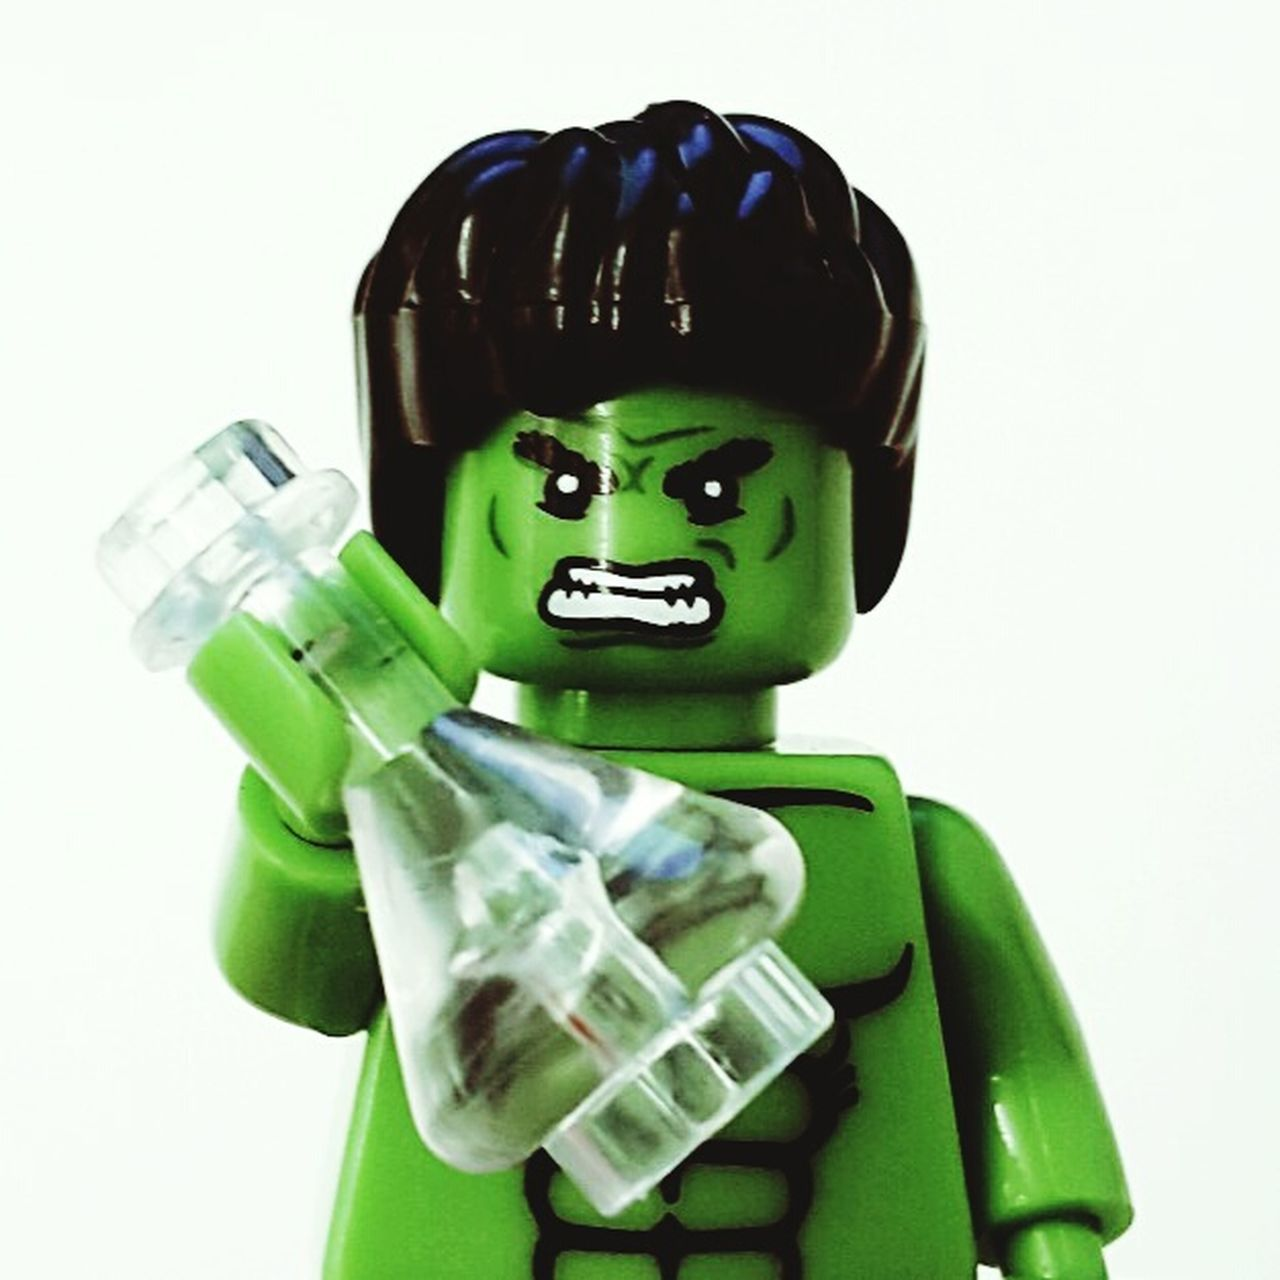 Hulk smaaaash and baaaash! Samsung Gear S2 Watchface LEGO Lego Minifigures Legominifigures Legophotography Toyphotography Legostarwars Legostormtrooper Minifigures Lego Art Star Wars Samsunggears2 Watchface Starwars Lego Star Wars  Theincrediblehulk IncredibleHulk Hulk Legohulk Marvel Lego  Marvel